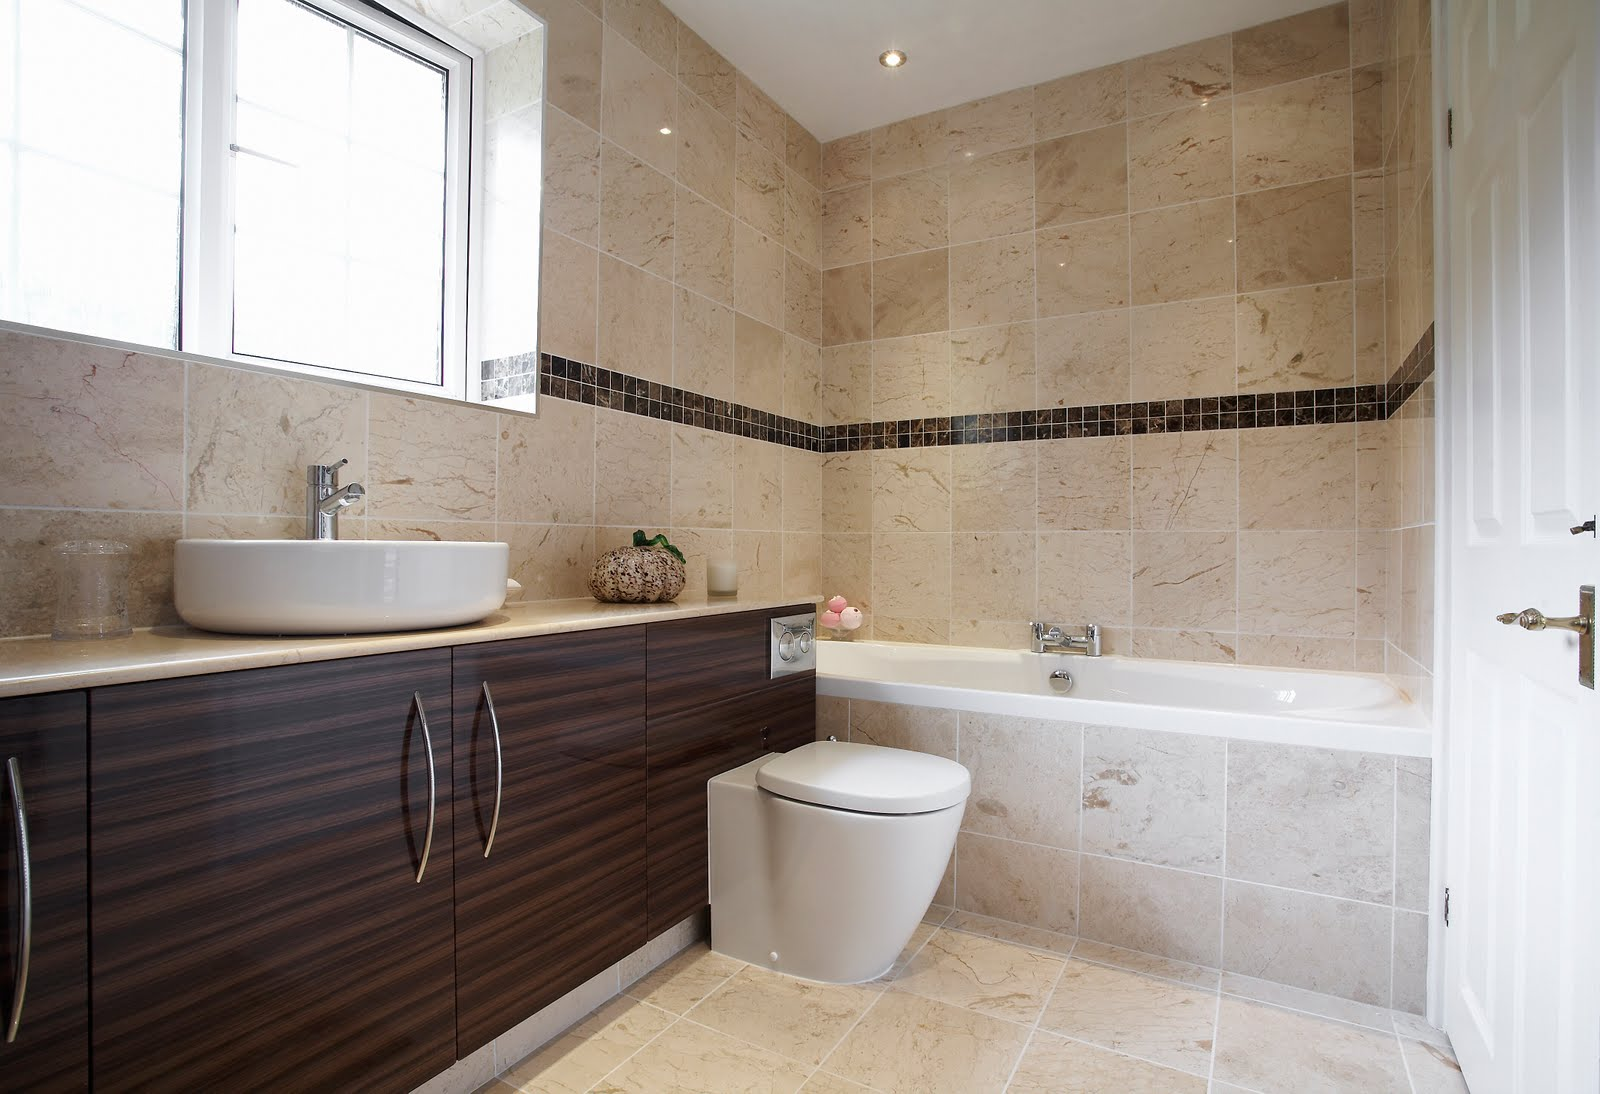 Cymru kitchens ltd cymru kitchens bathrooms for Photographs of bathrooms